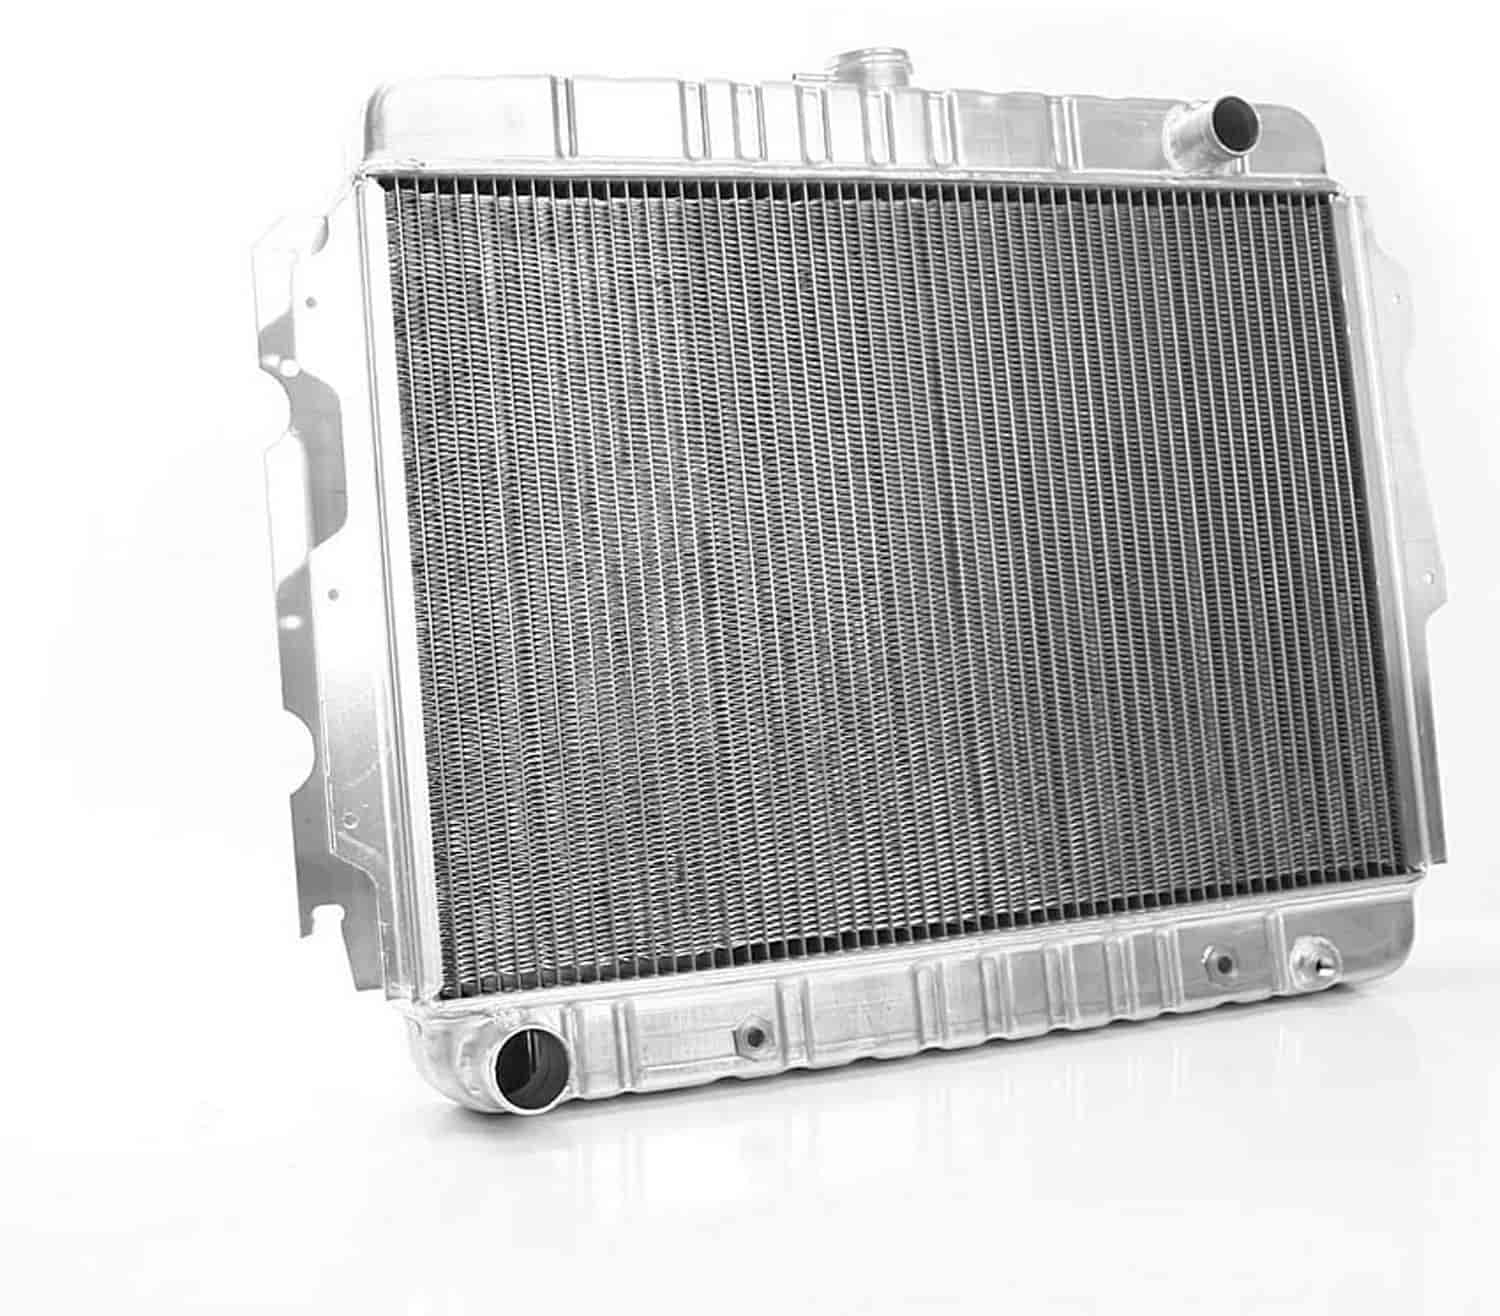 Griffin Radiators ExactFit Radiator for 1970-1973 Chrysler B Body  Charger/Coronet/Road Runner/Satellite with Big Block